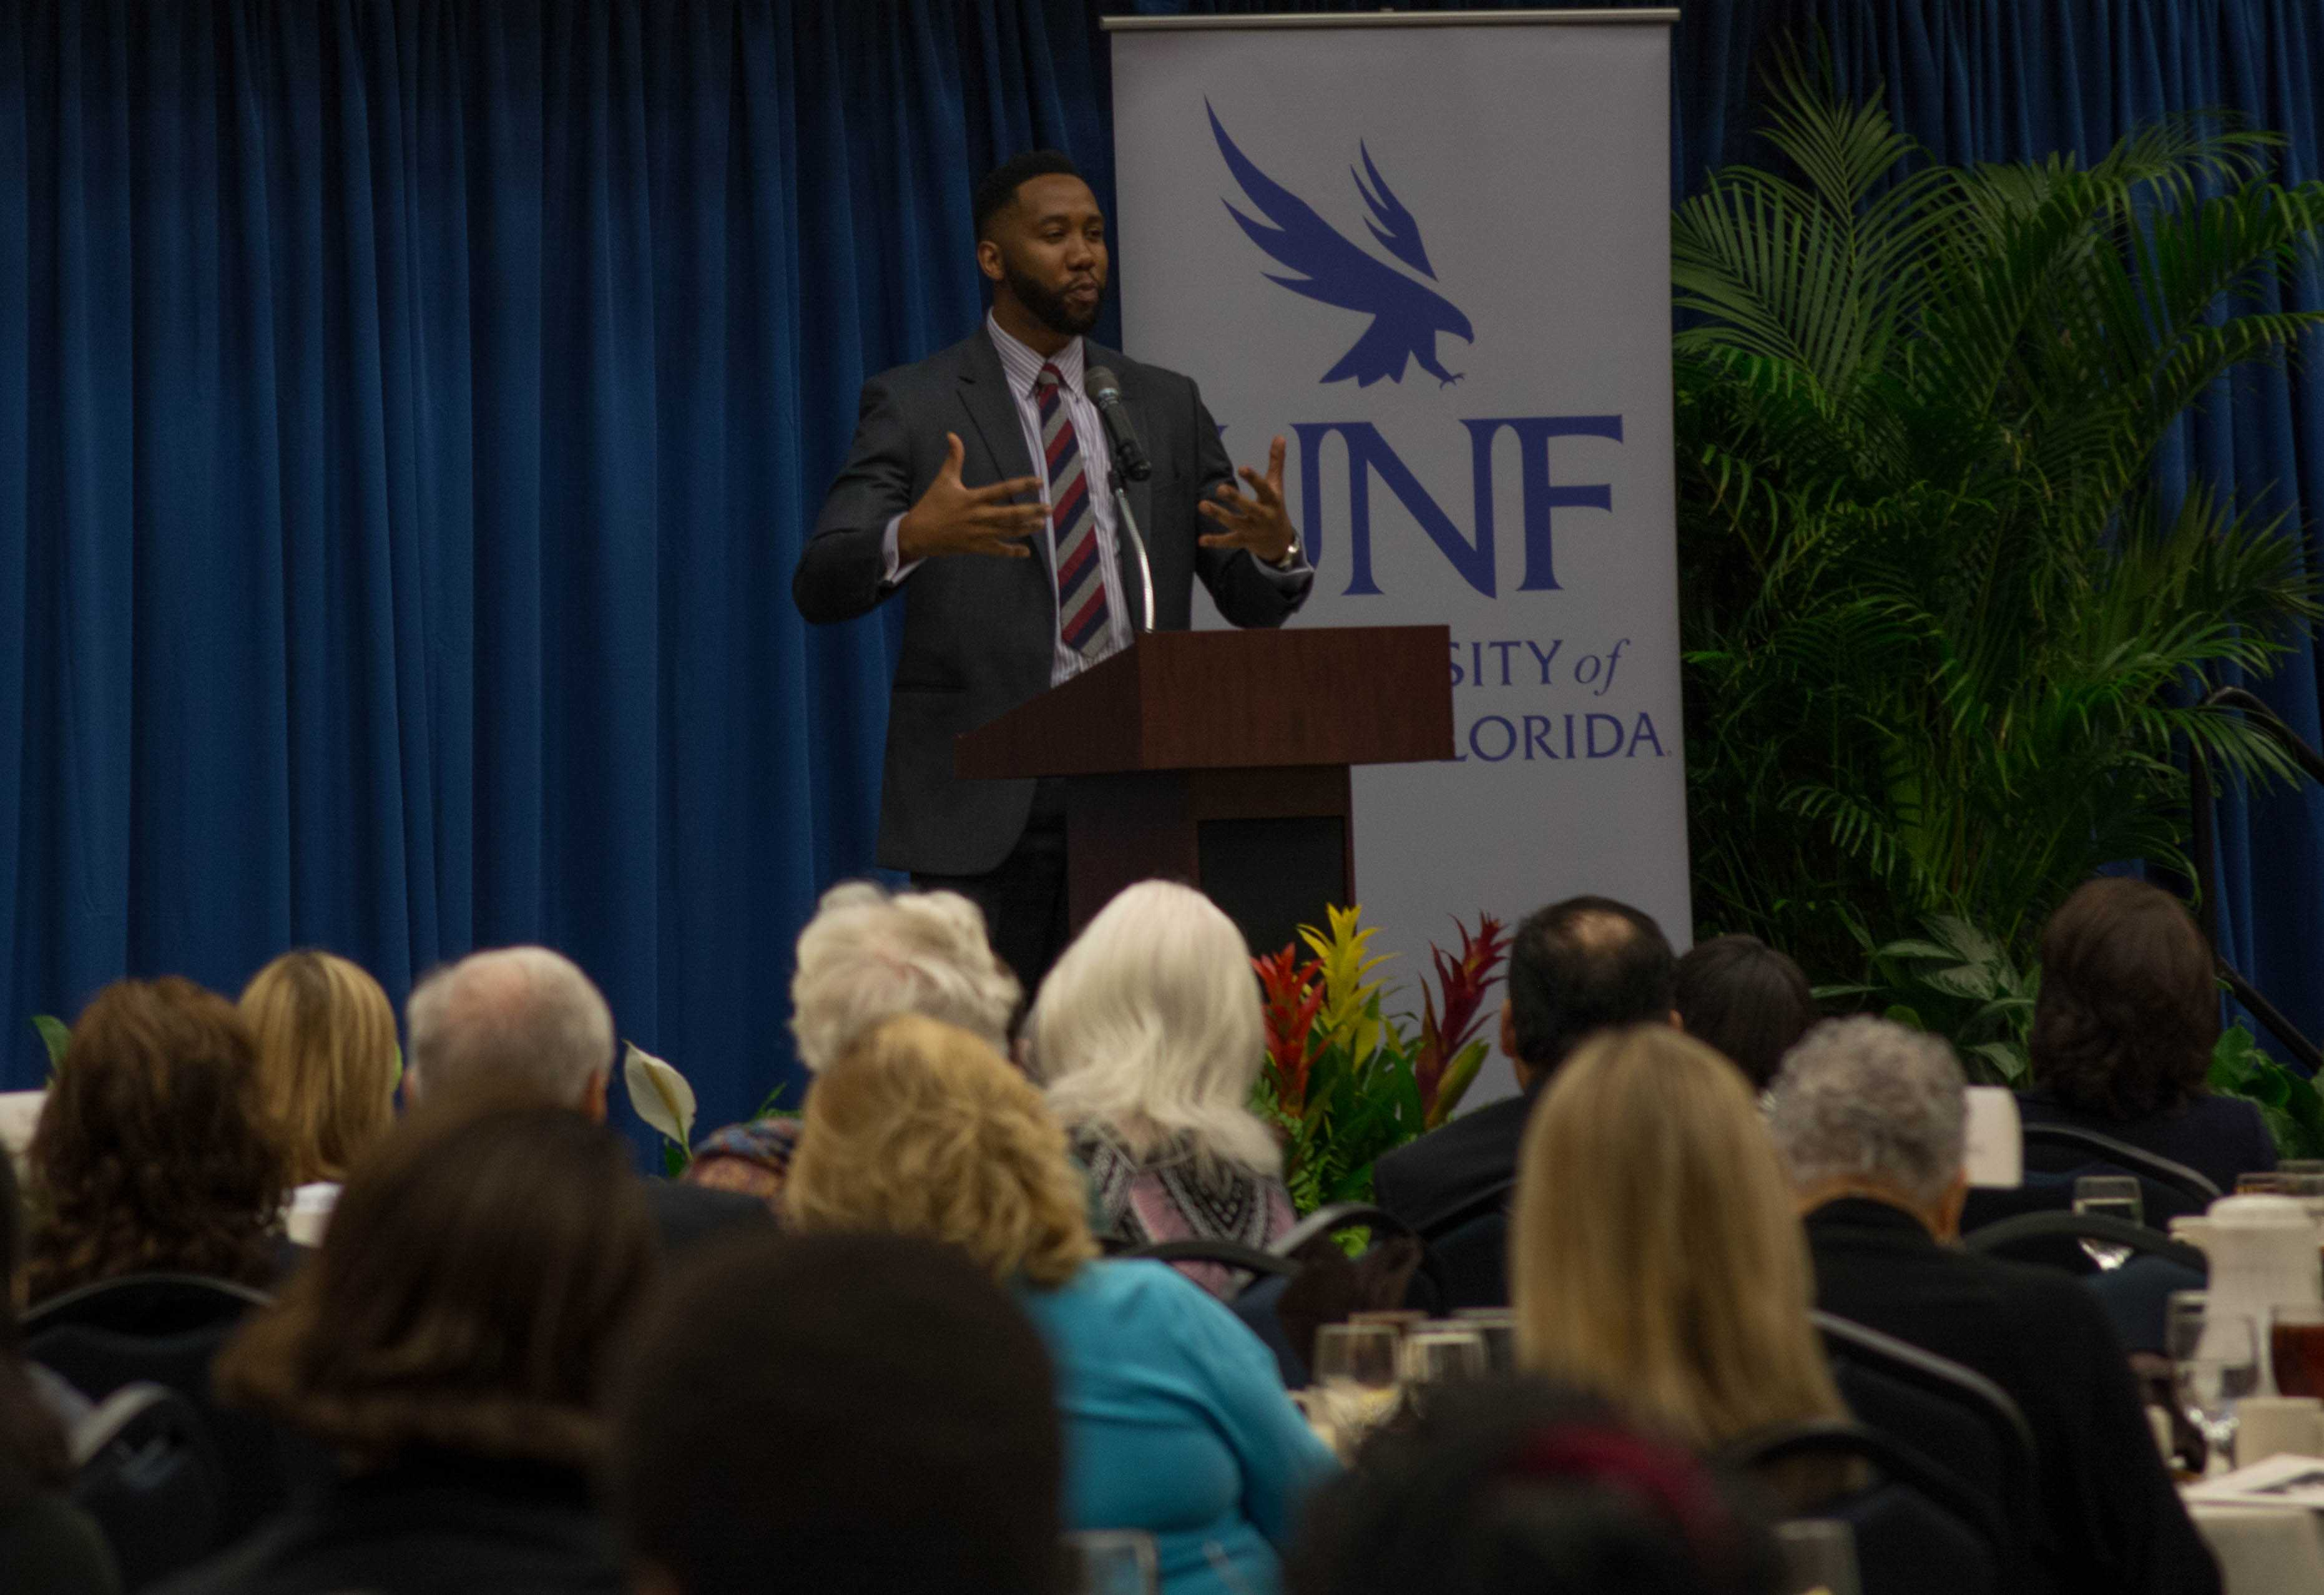 Nbada Mandela visits UNF to speak at MLK luncheon